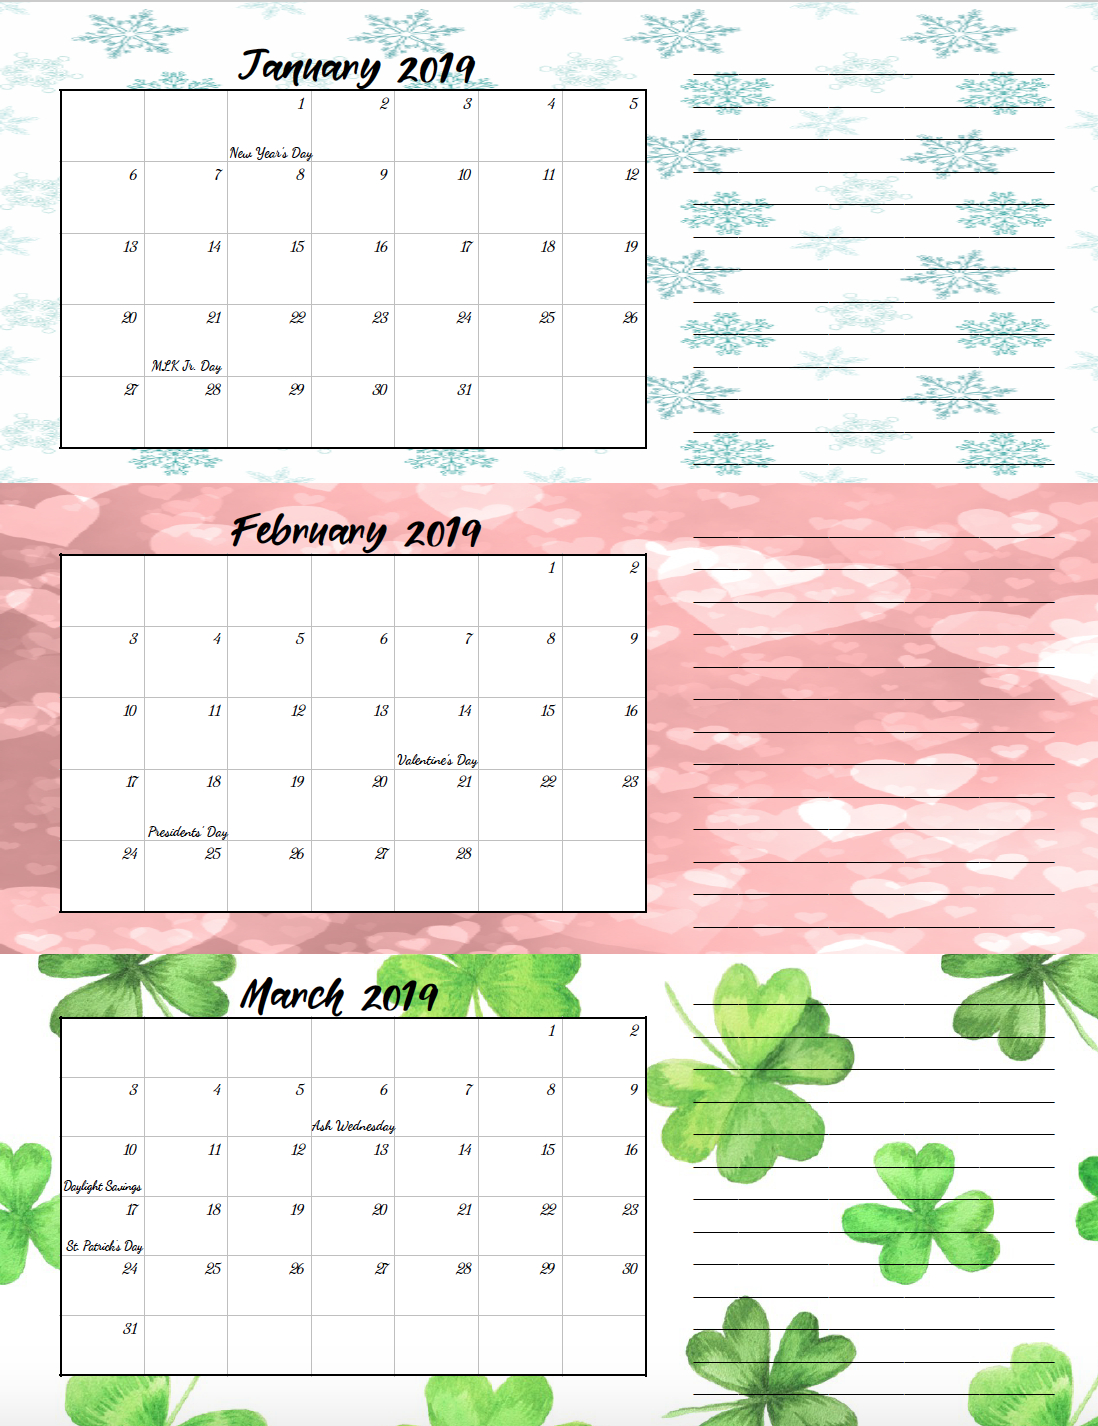 Free Printable 2019 Quarterly Calendars With Holidays: 3 Designs Calendar 2019 Themes